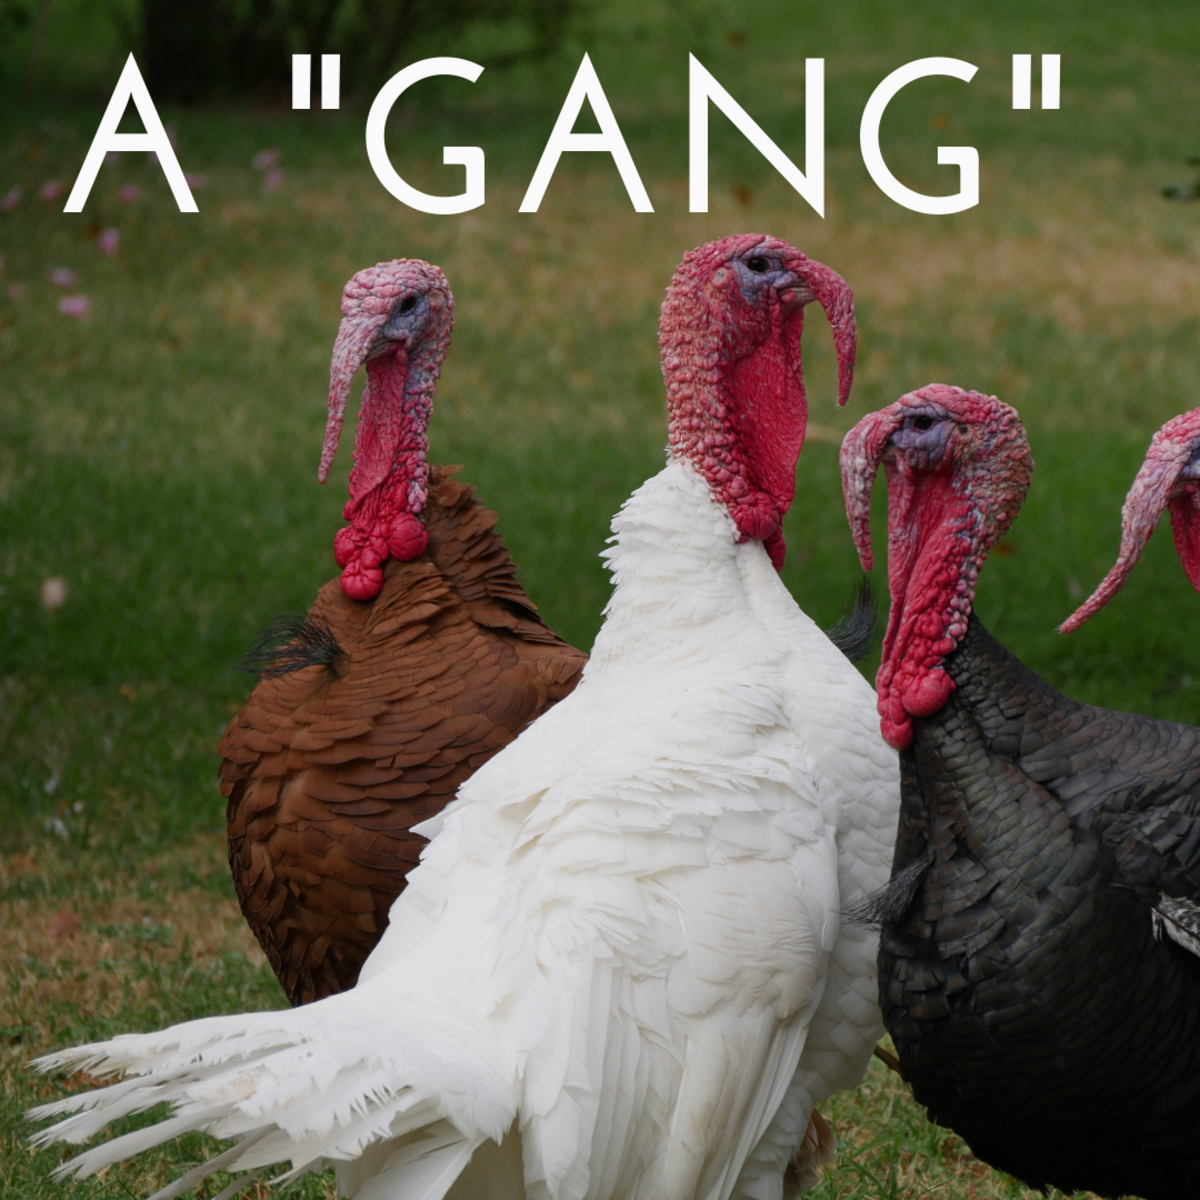 A gang of turkeys.